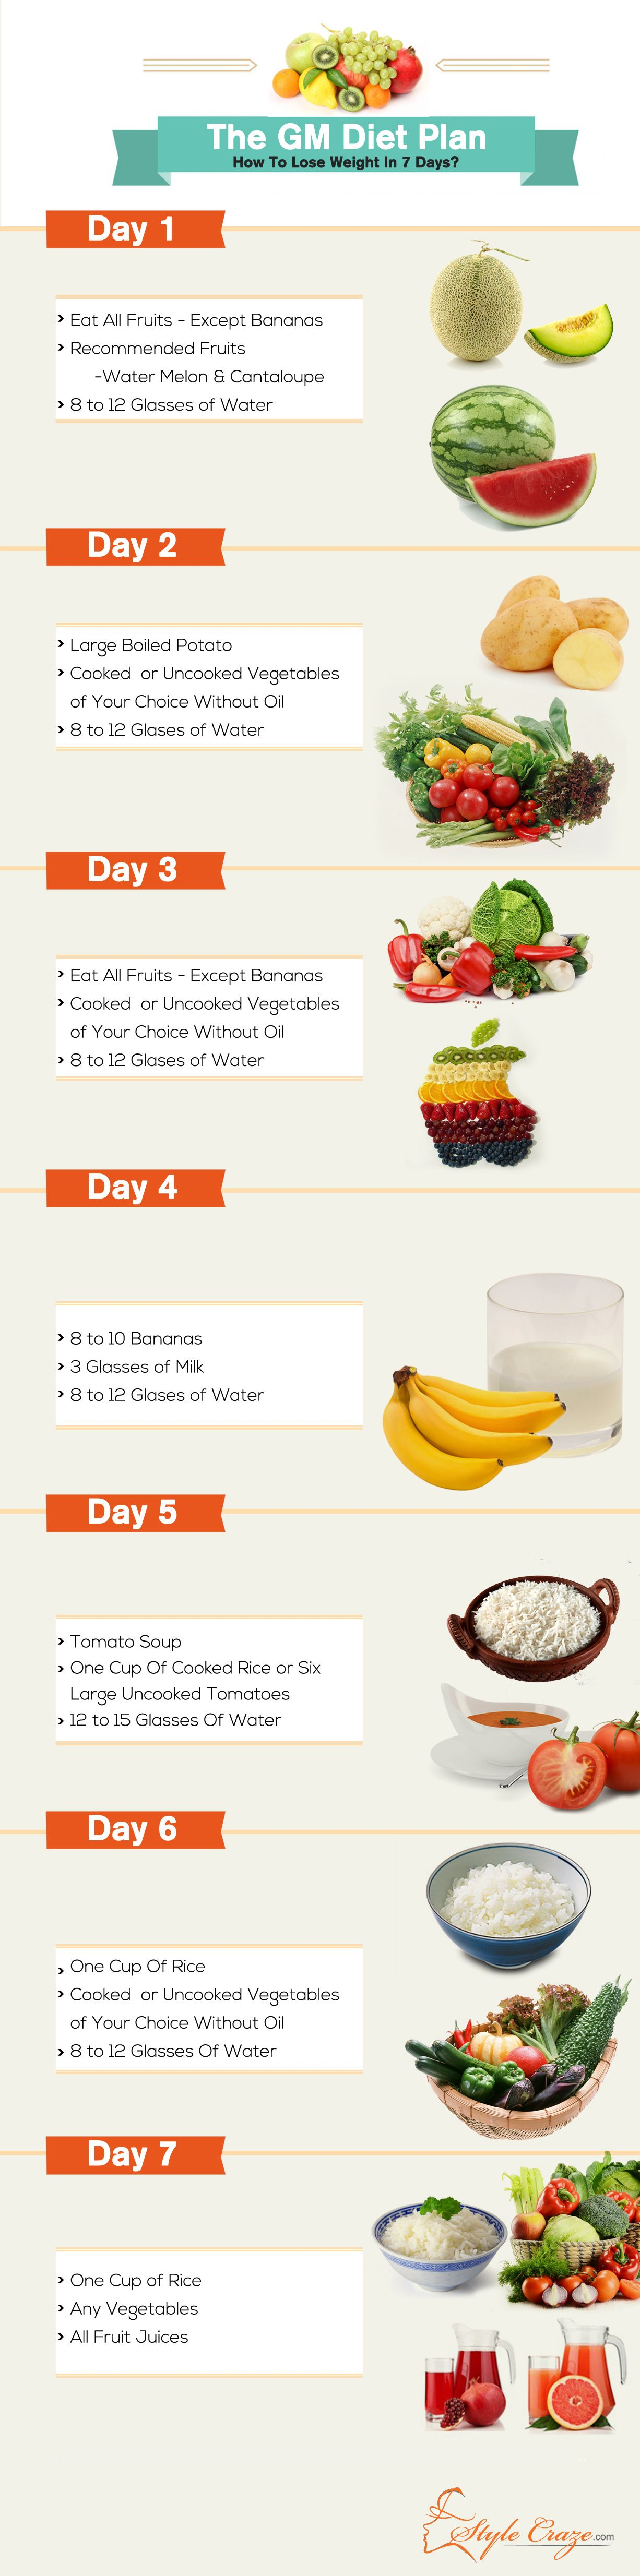 The Gm Diet Plan: How To Lose Weight In 7 Days? Http: